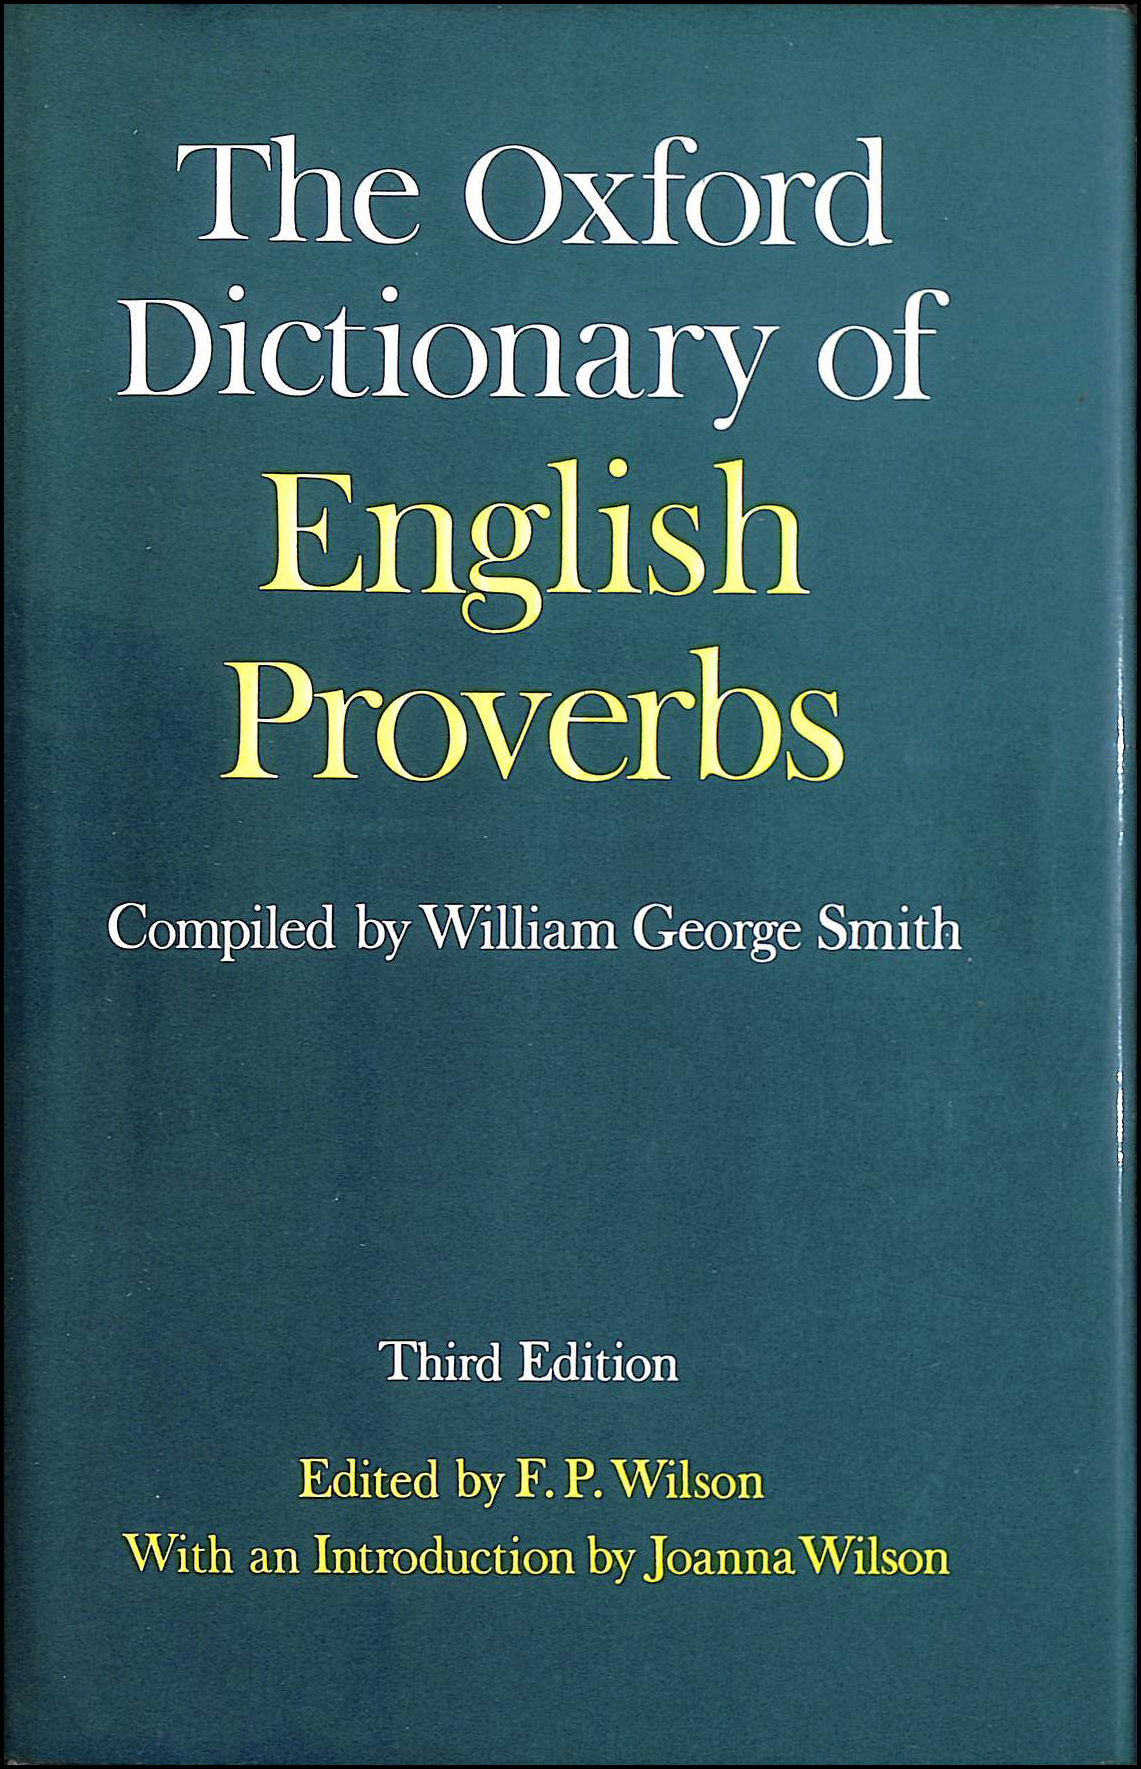 Image for The Oxford Dictionary of English Proverbs